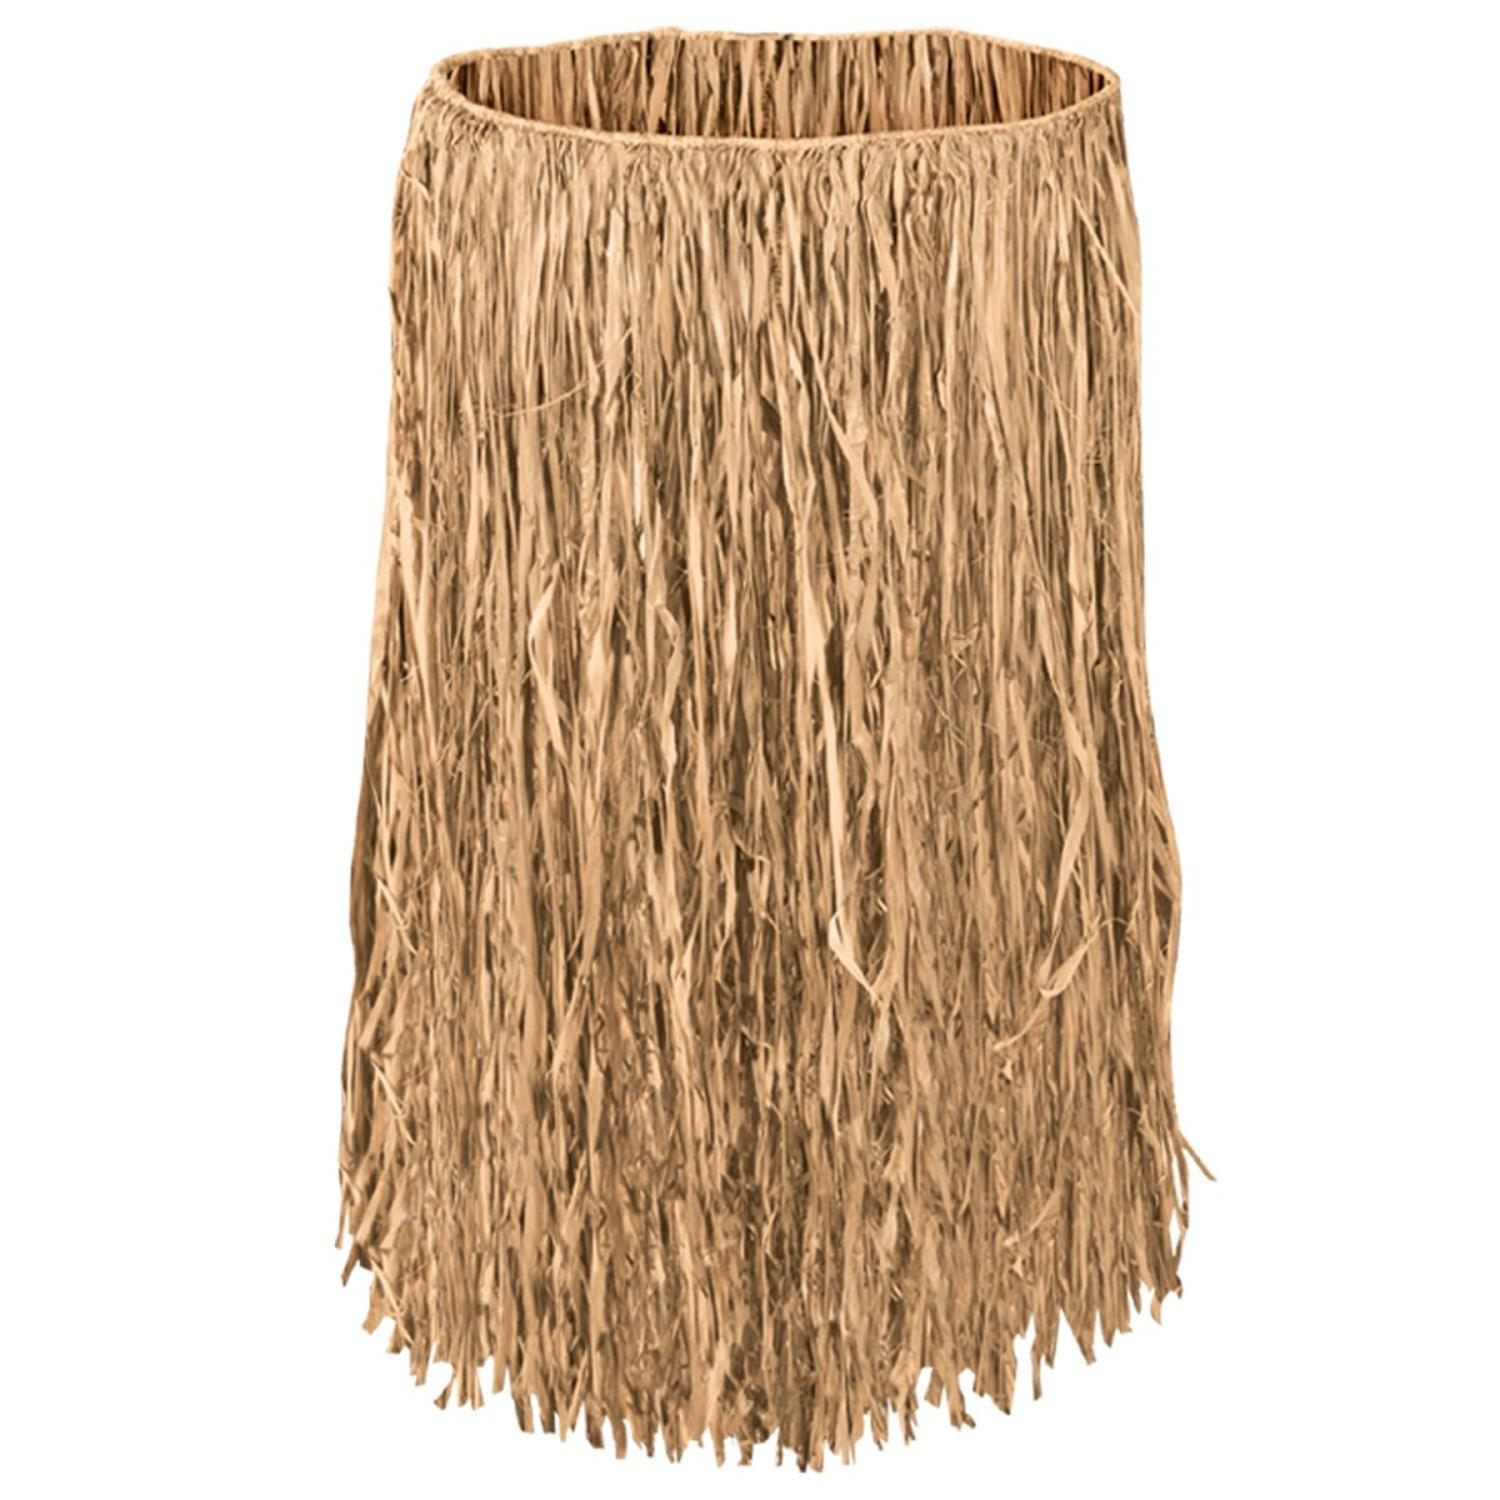 Club Pack of 12 Tropical Tan Extra Large Adult Sized Raffia Hula Skirts 38""